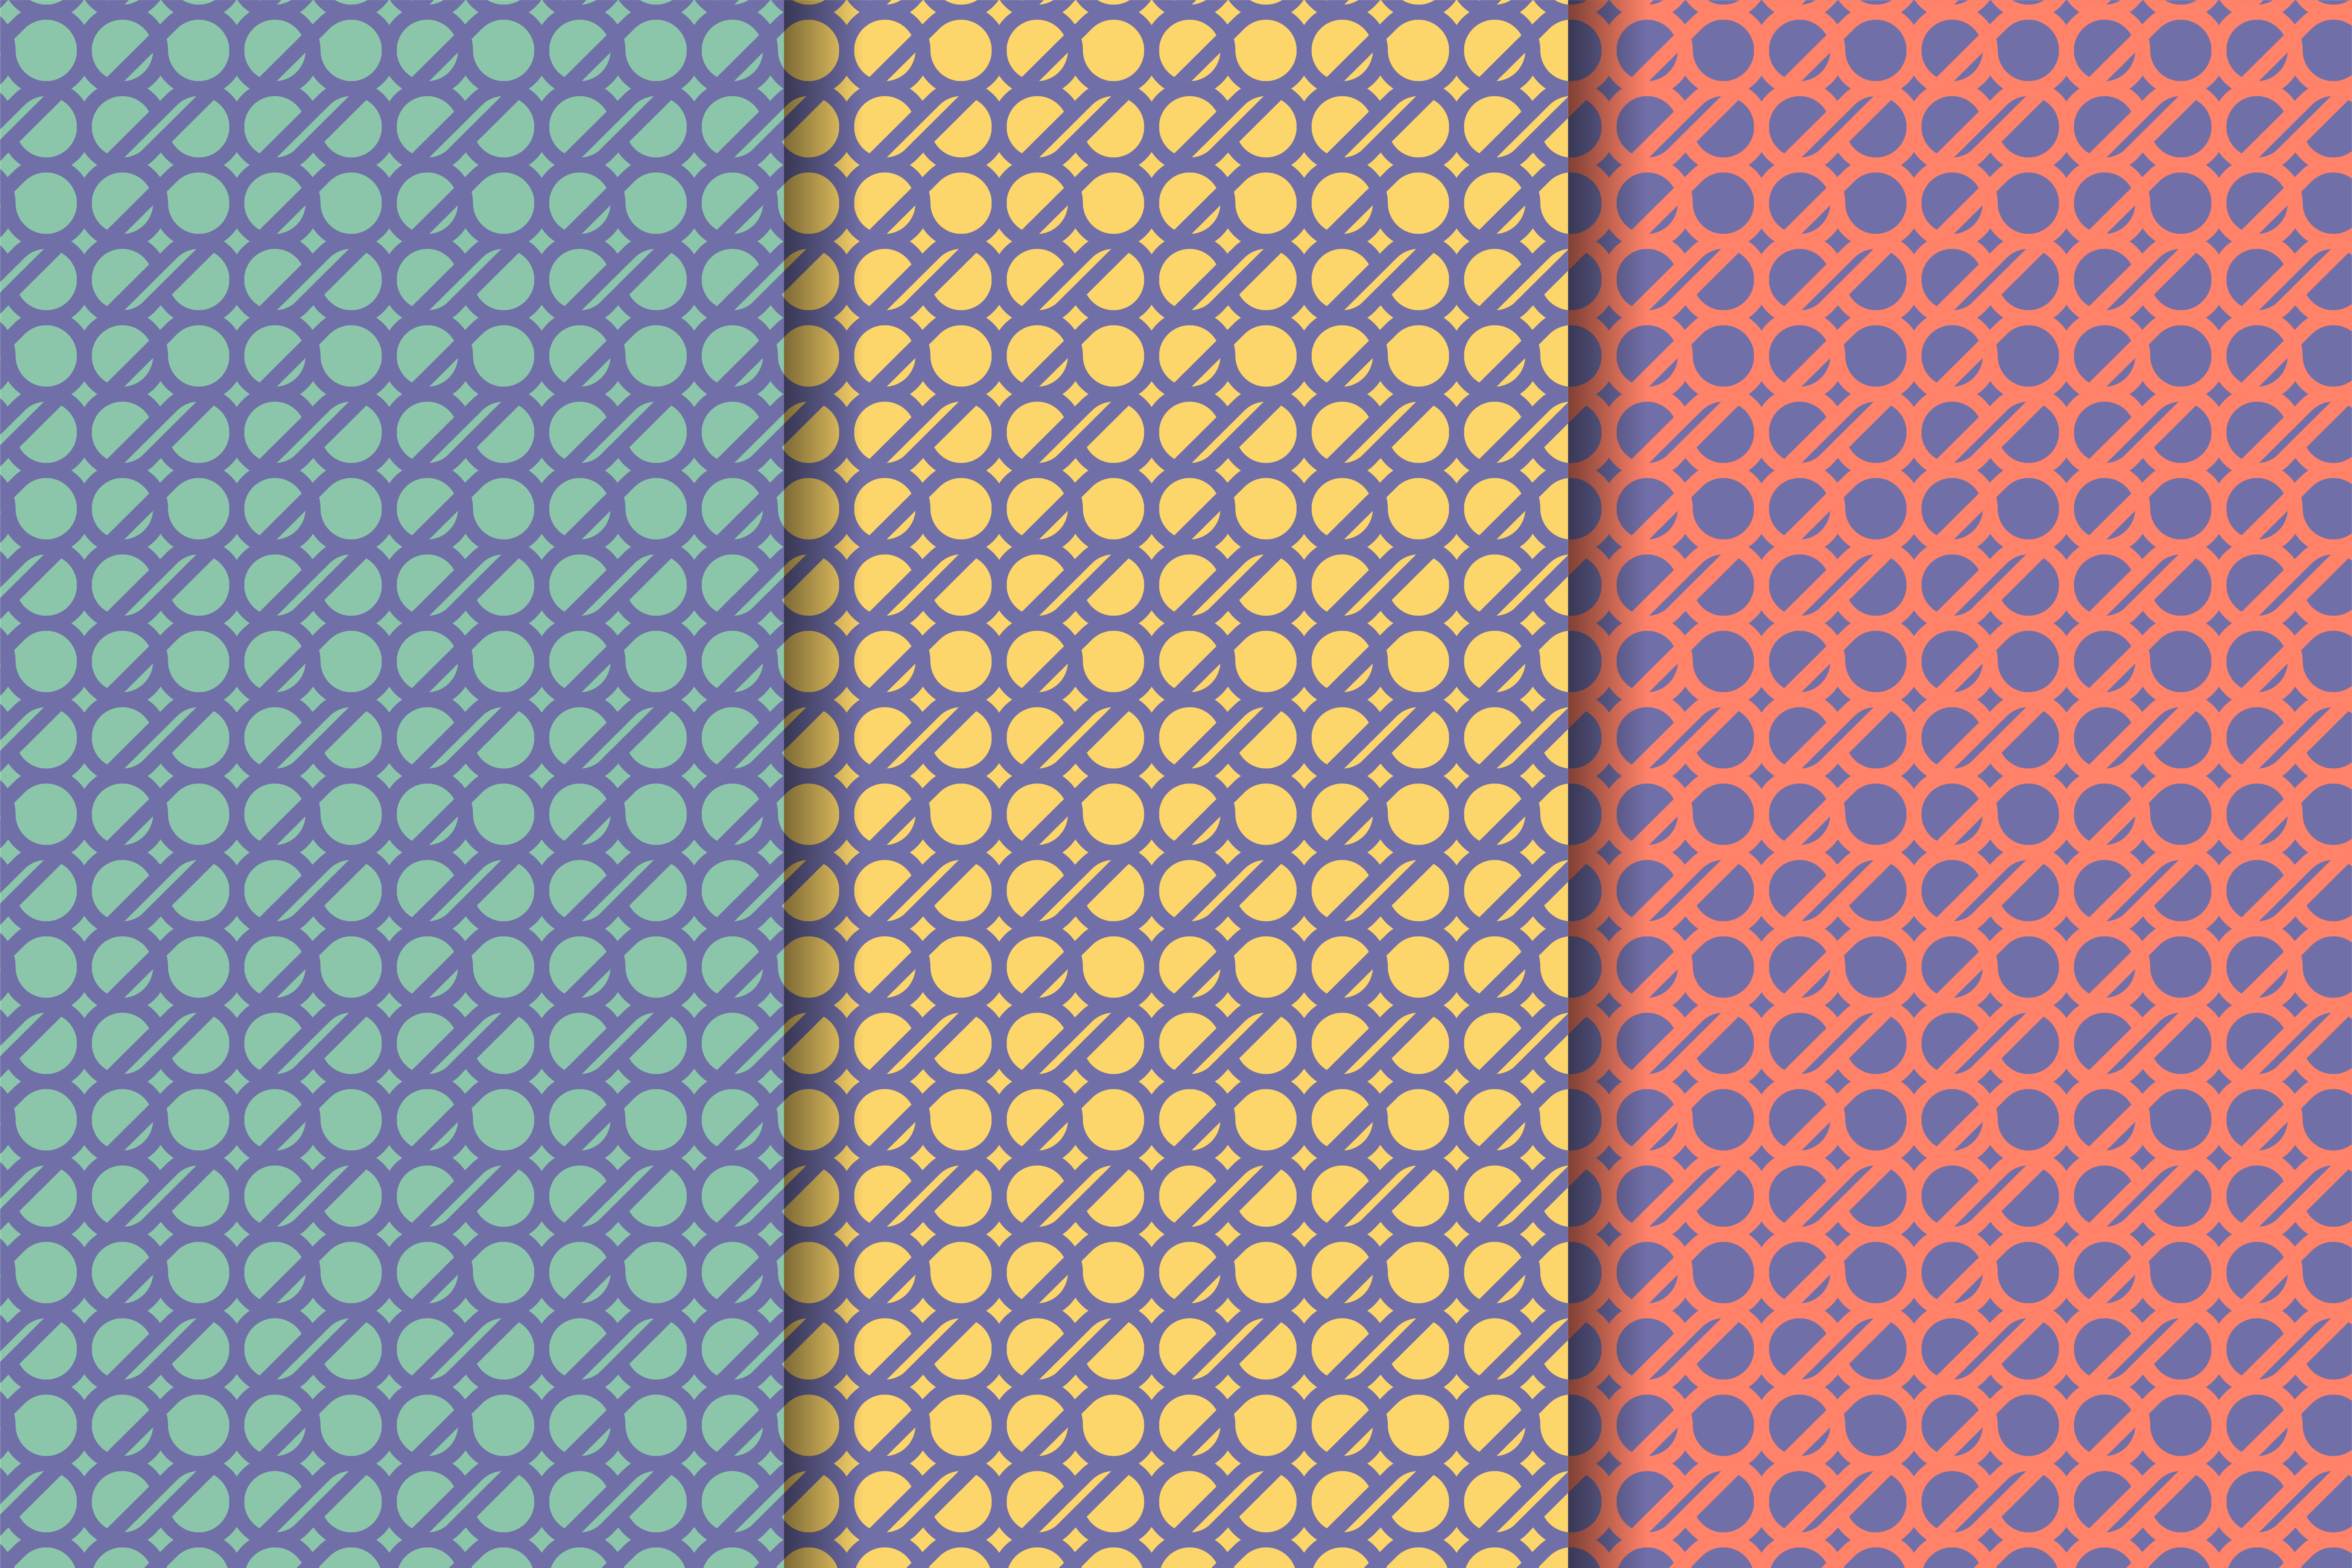 Download Free Circle Bold Pattern Flat Pastel Graphic By Noory Shopper for Cricut Explore, Silhouette and other cutting machines.